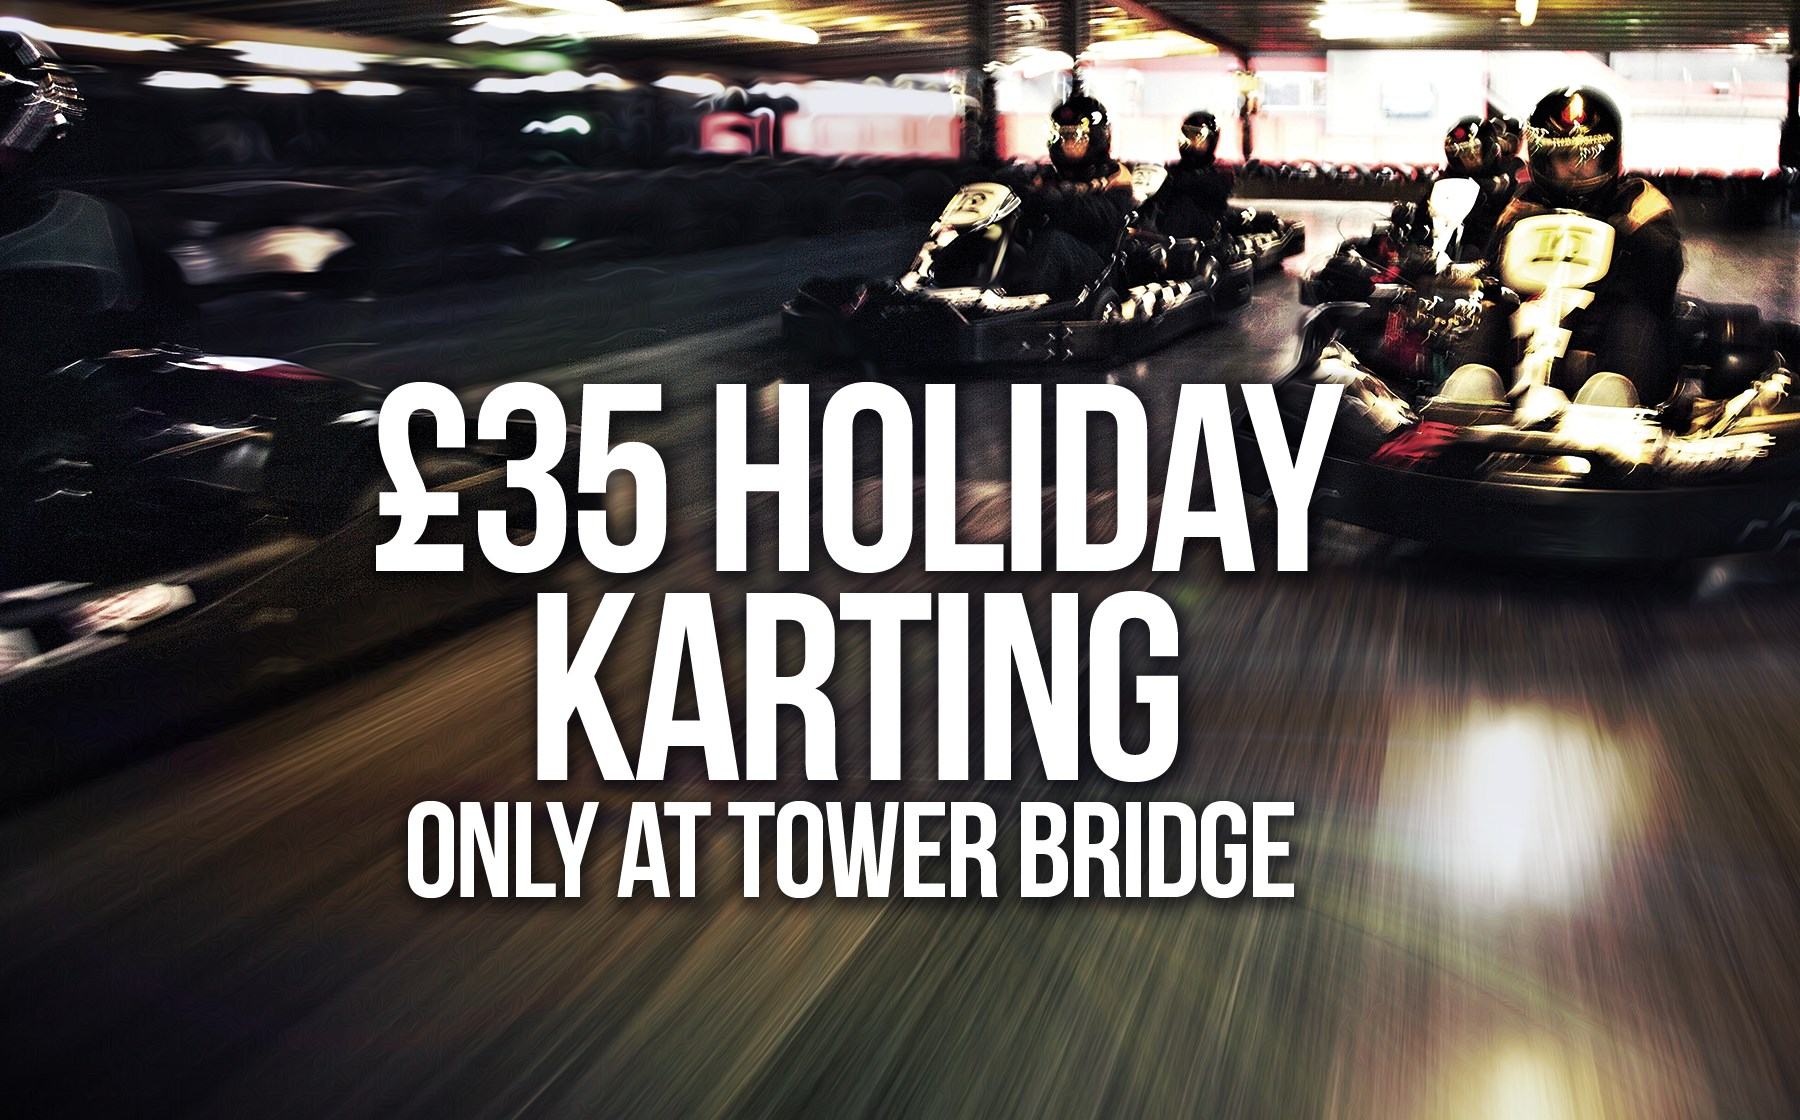 GO KARTING OFFERS - £35 Holiday Karting